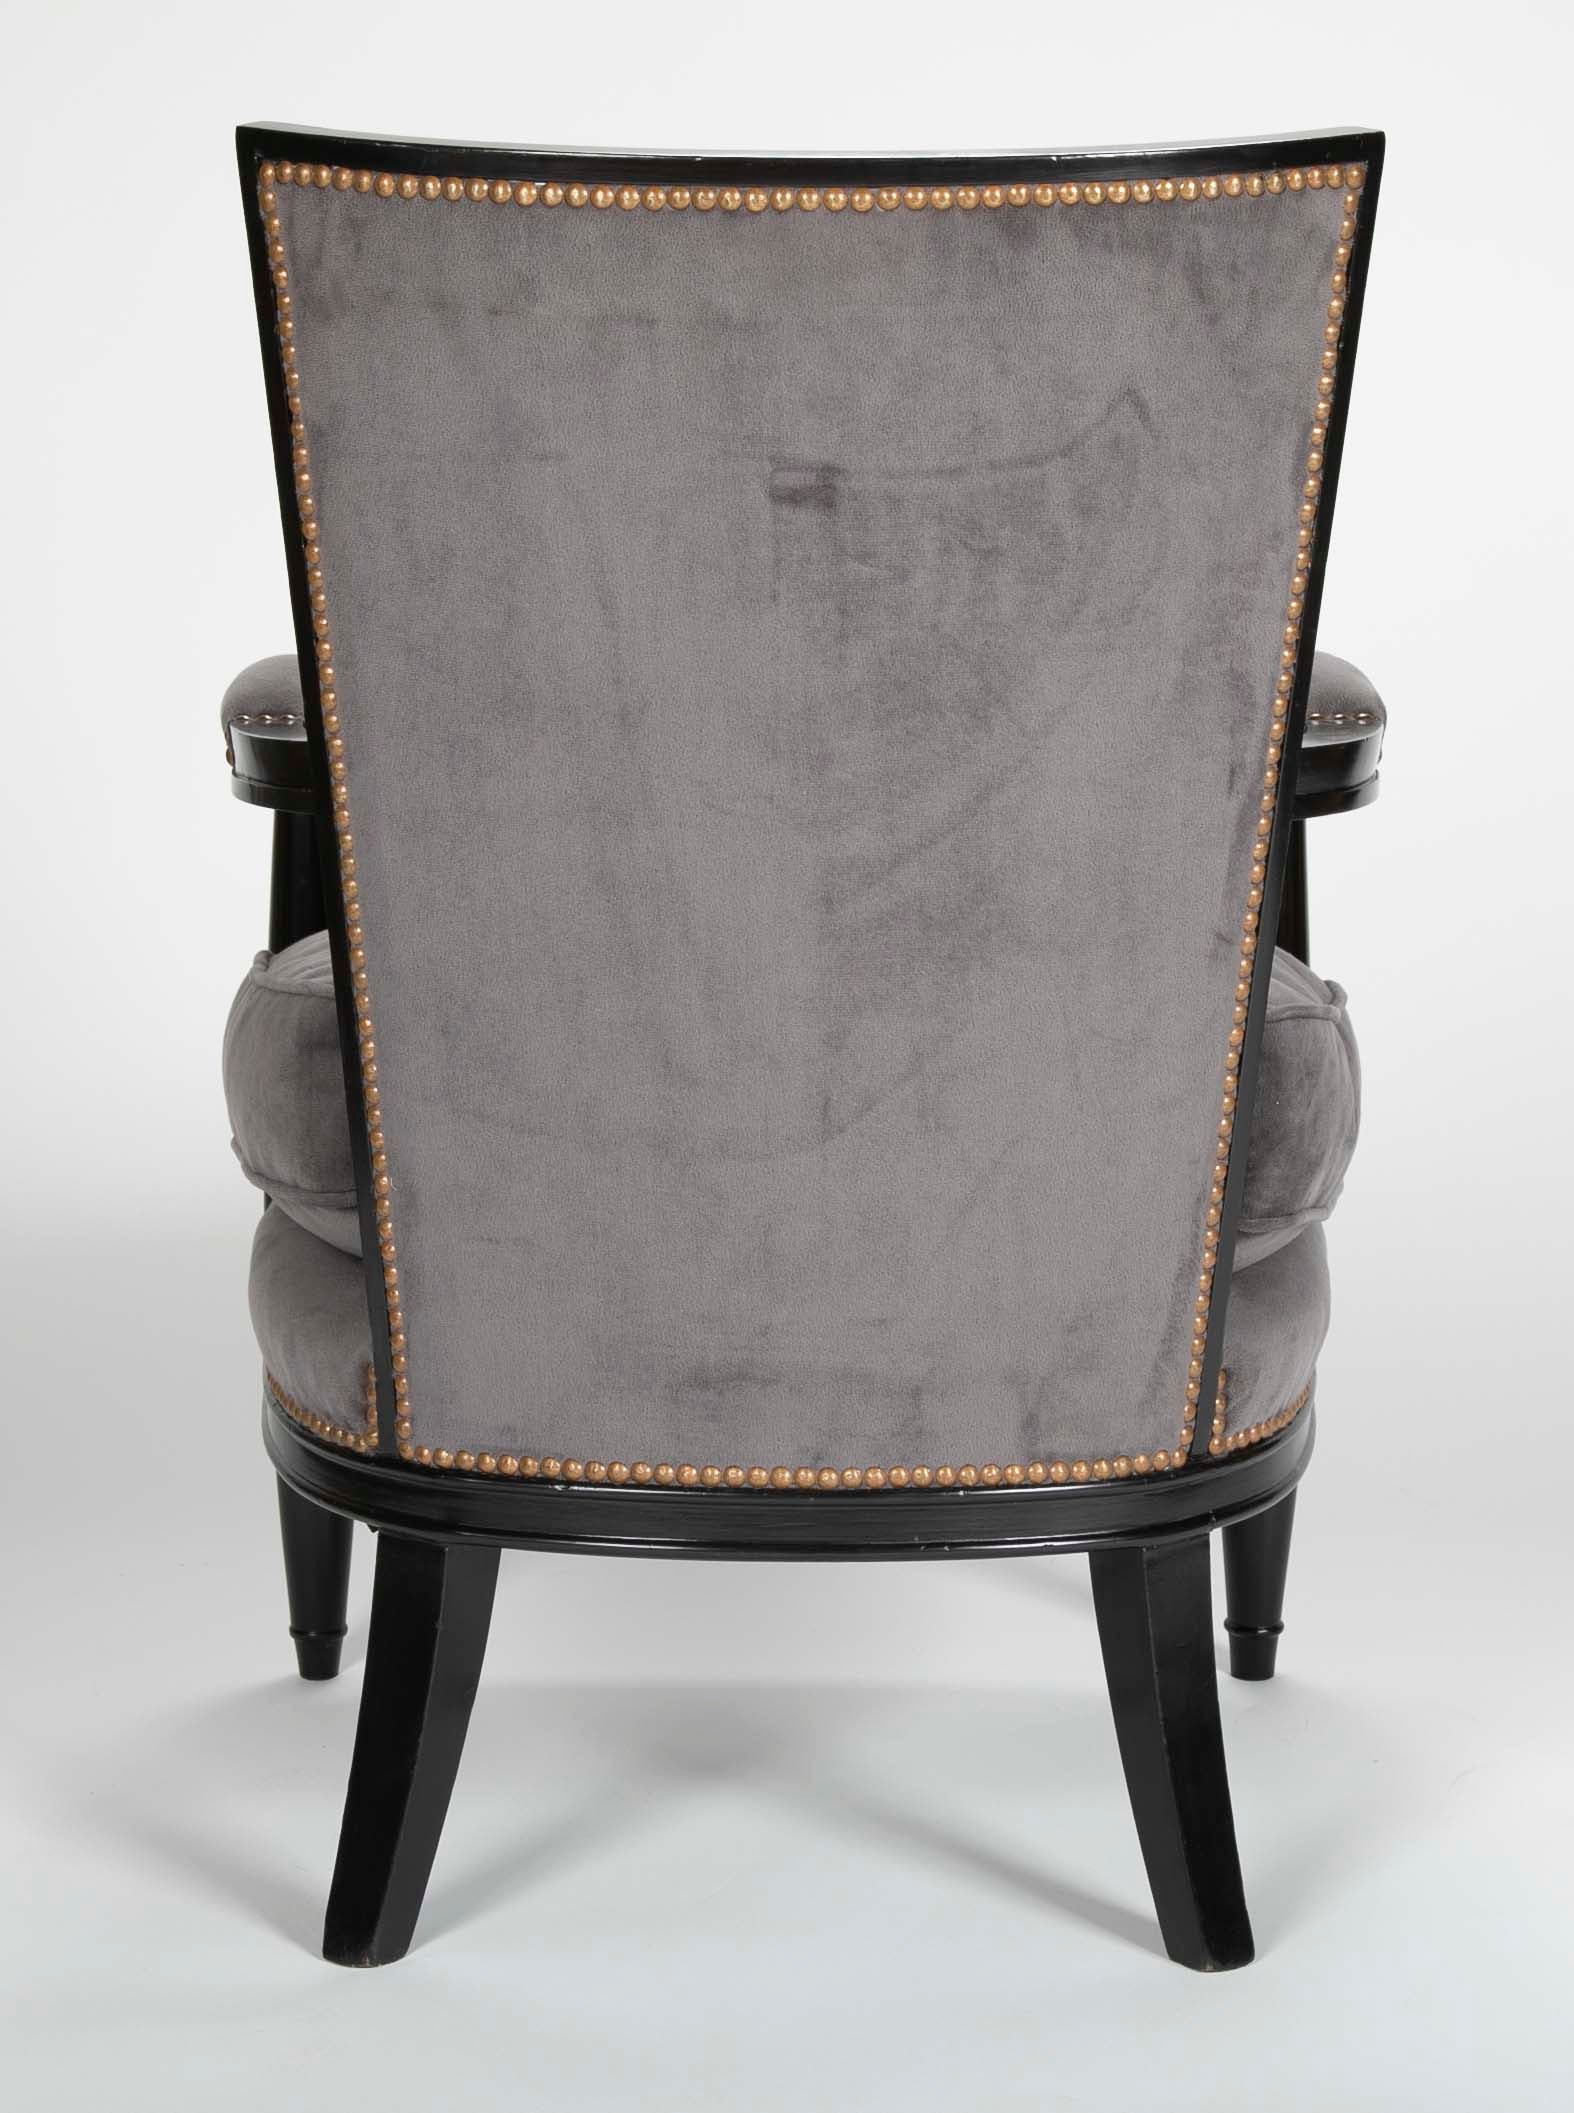 Pair of Ebonized Open Arm Chairs French Directoire in the Manner of Andre Arbus